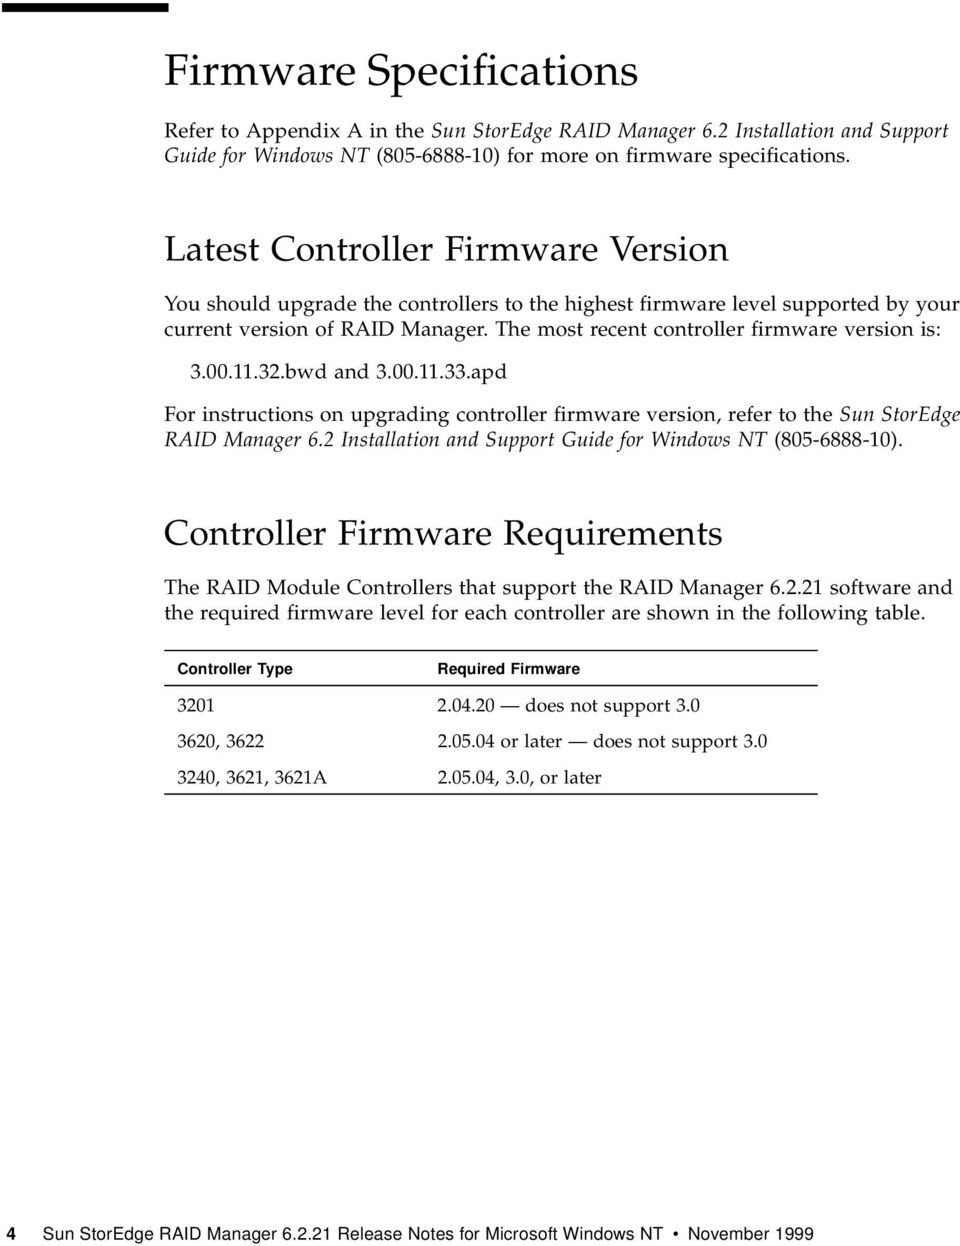 The most recent controller firmware version is: 3.00.11.32.bwd and 3.00.11.33.apd For instructions on upgrading controller firmware version, refer to the Sun StorEdge RAID Manager 6.